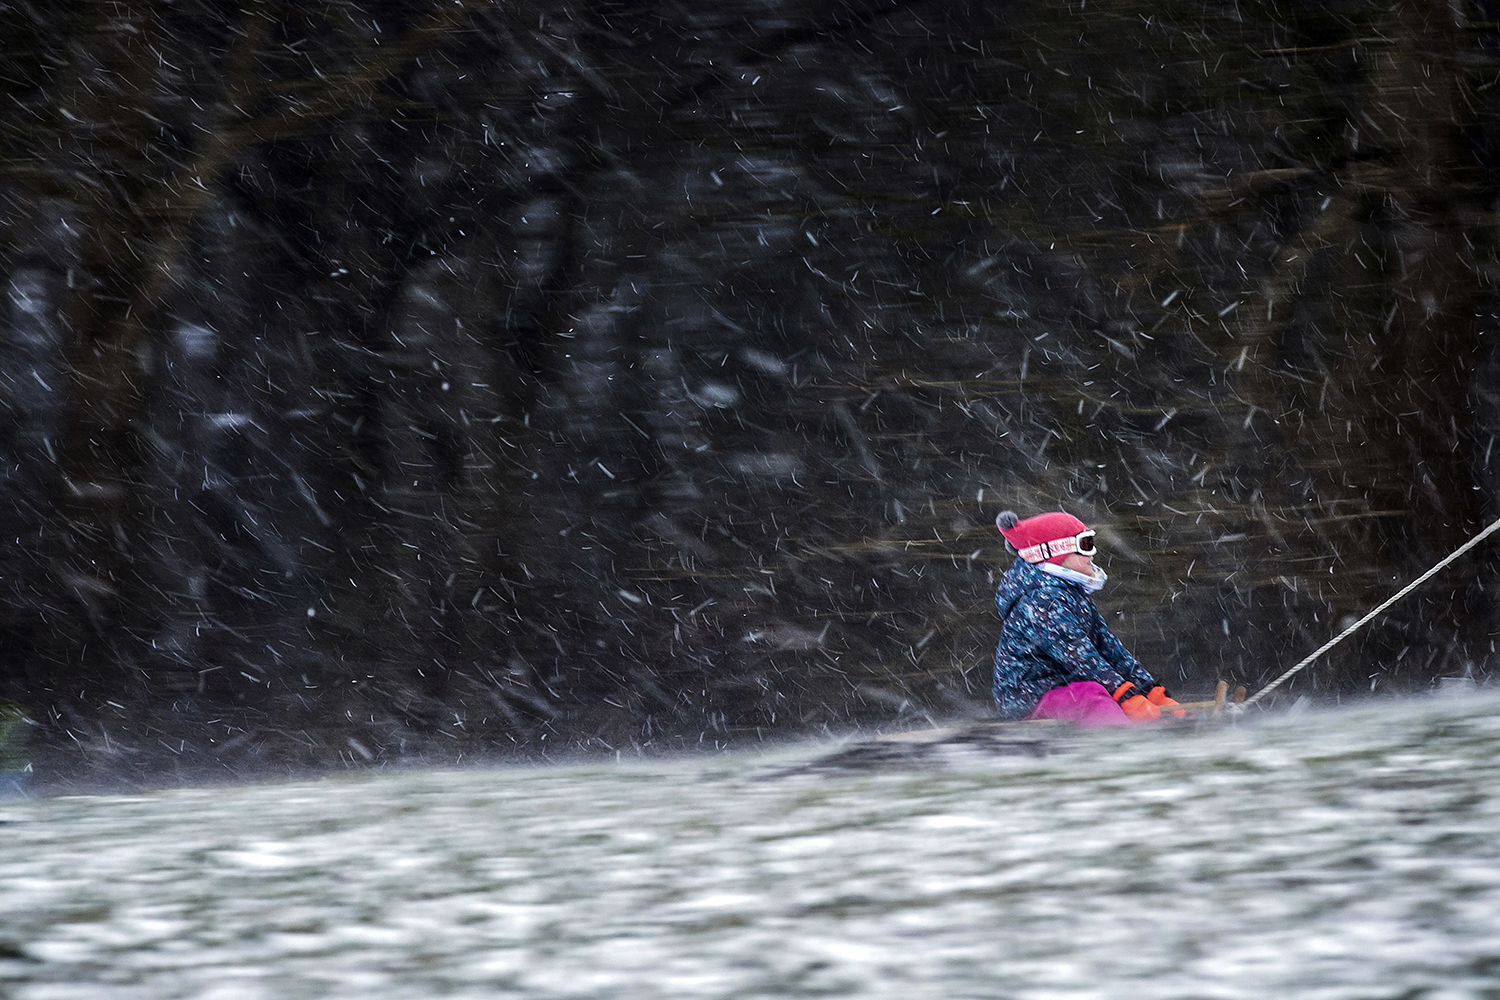 A child rides on a sled in Heiloo, Netherlands, on Feb. 7 during the country's first snowstorm in 10 years. KOEN VAN WEEL/ANP/AFP via Getty Images